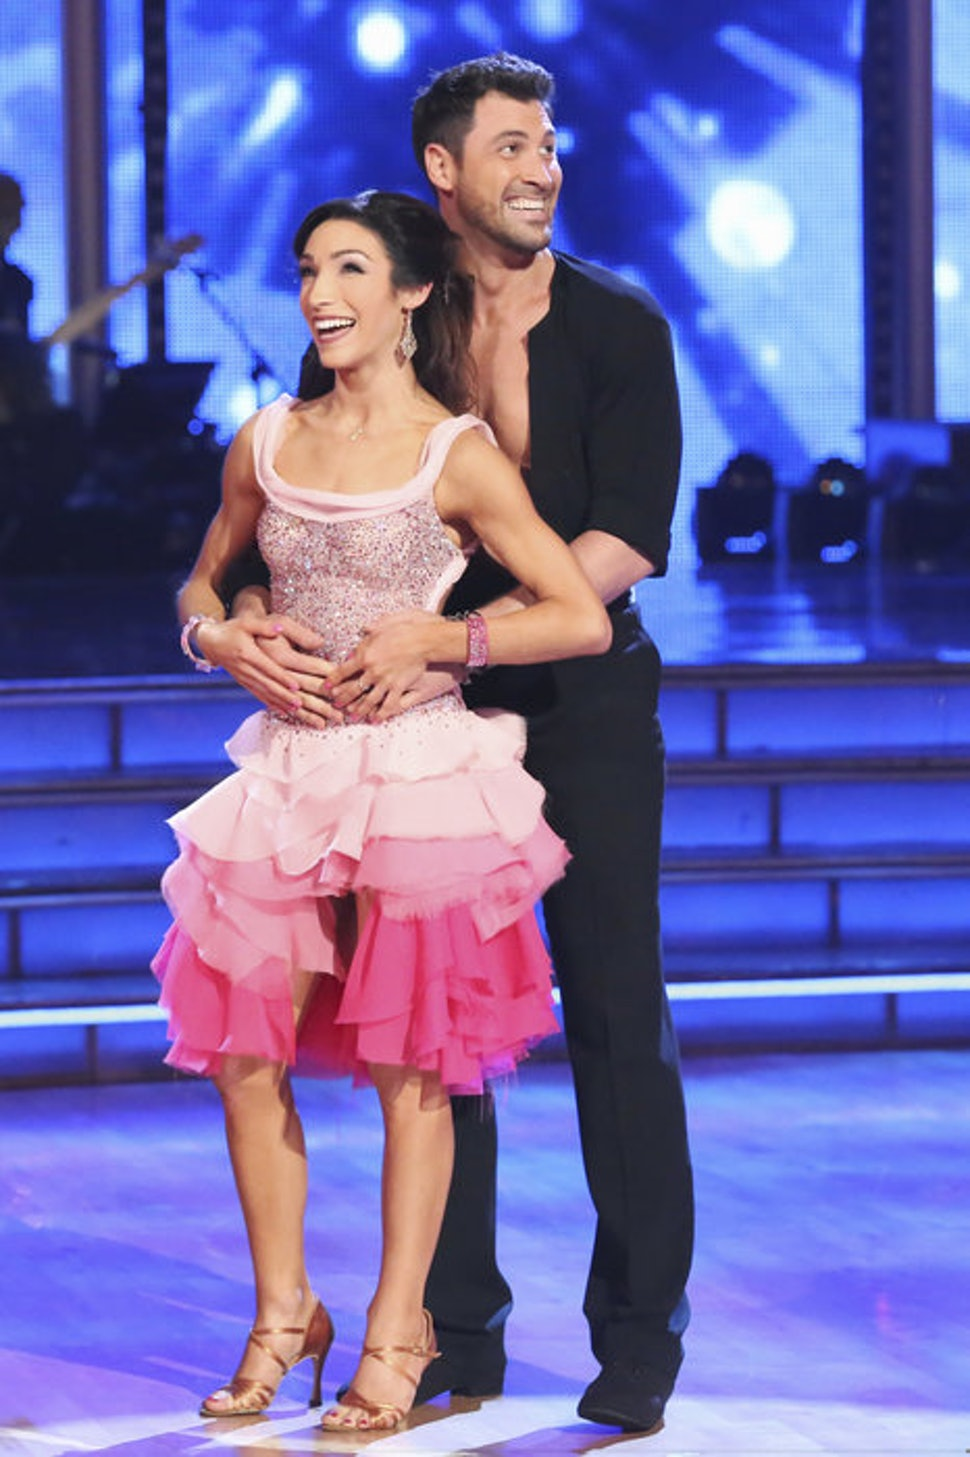 Maksim Chmerkovskiy Meryl Davis Declare We Re Not: 'Dancing With The Stars' Meryl Davis & Maksim Chmerkovskiy